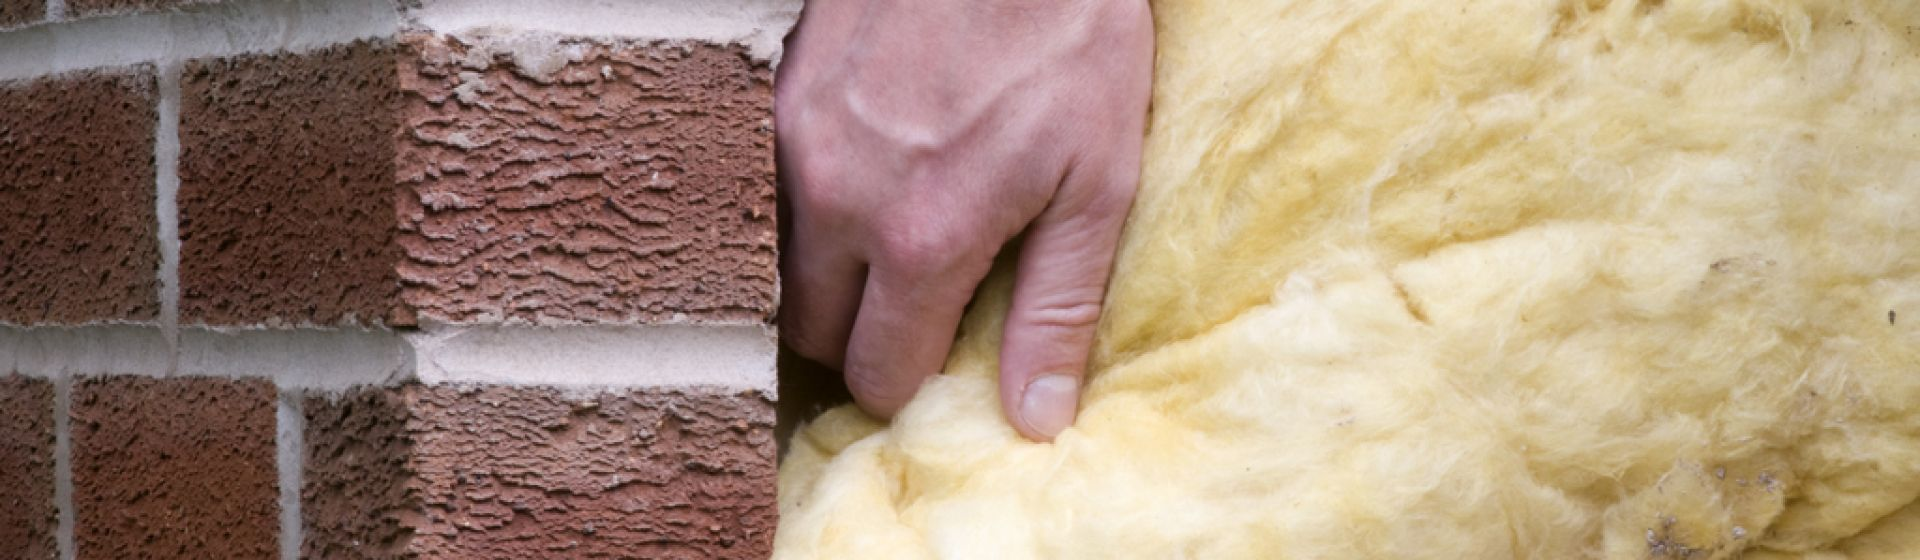 Man-putting-insulation-into-a-property-172975721_3432x2228